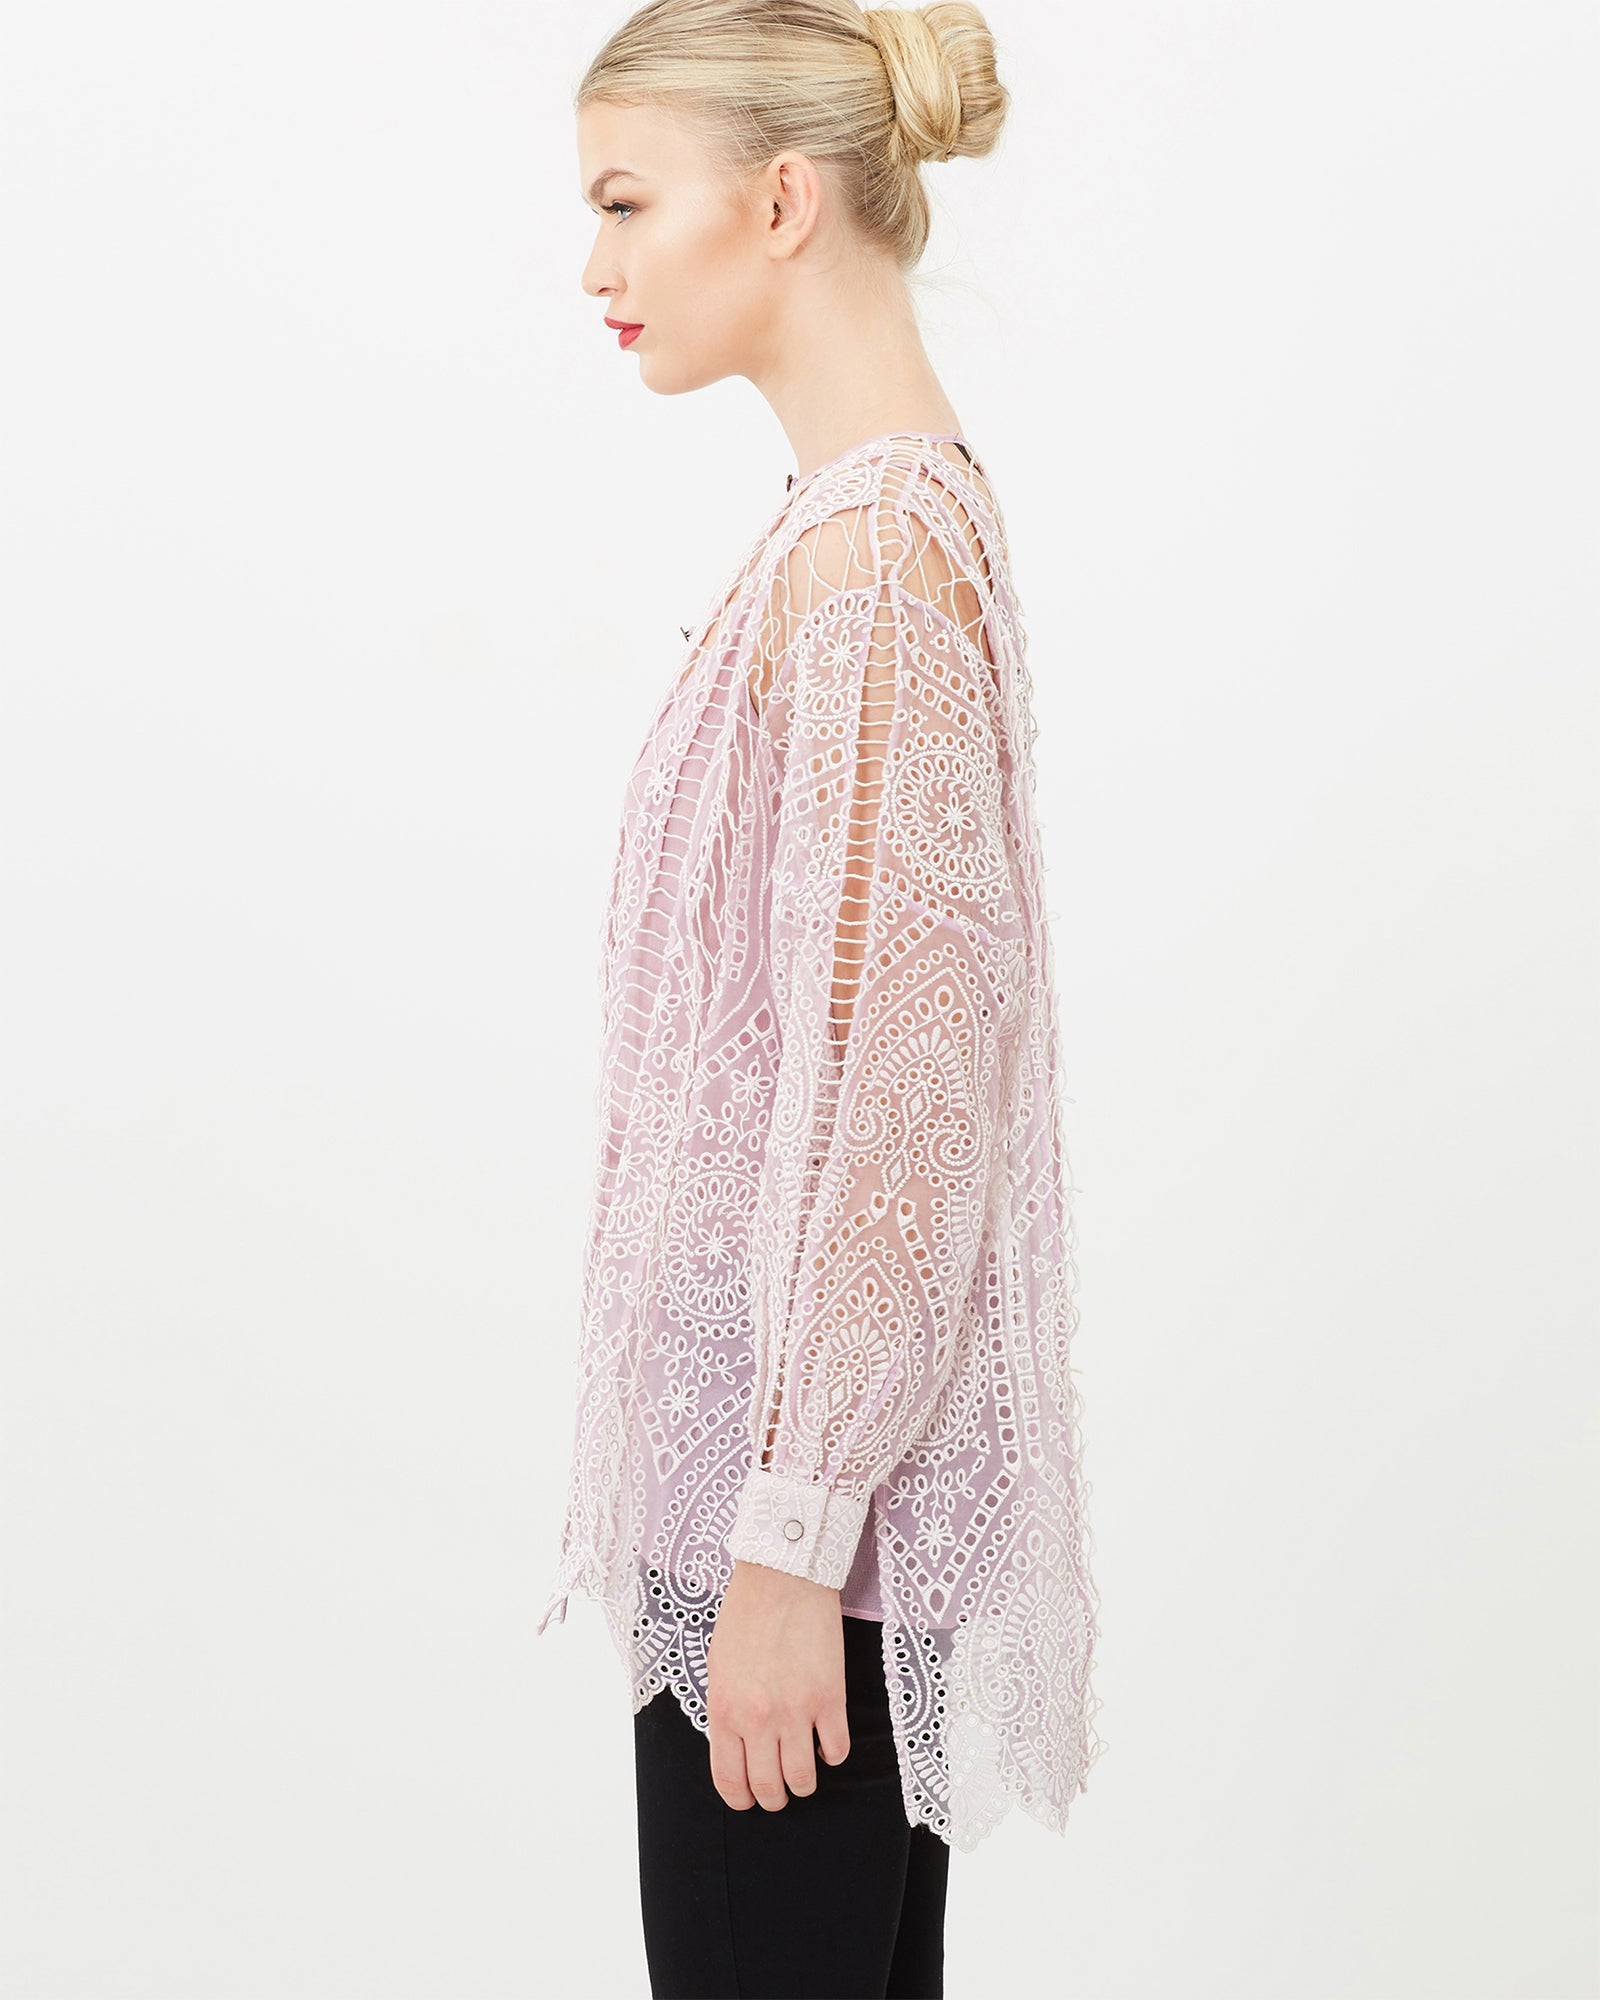 BOHEMIAN LONG SLEEVE RELAXED TOP